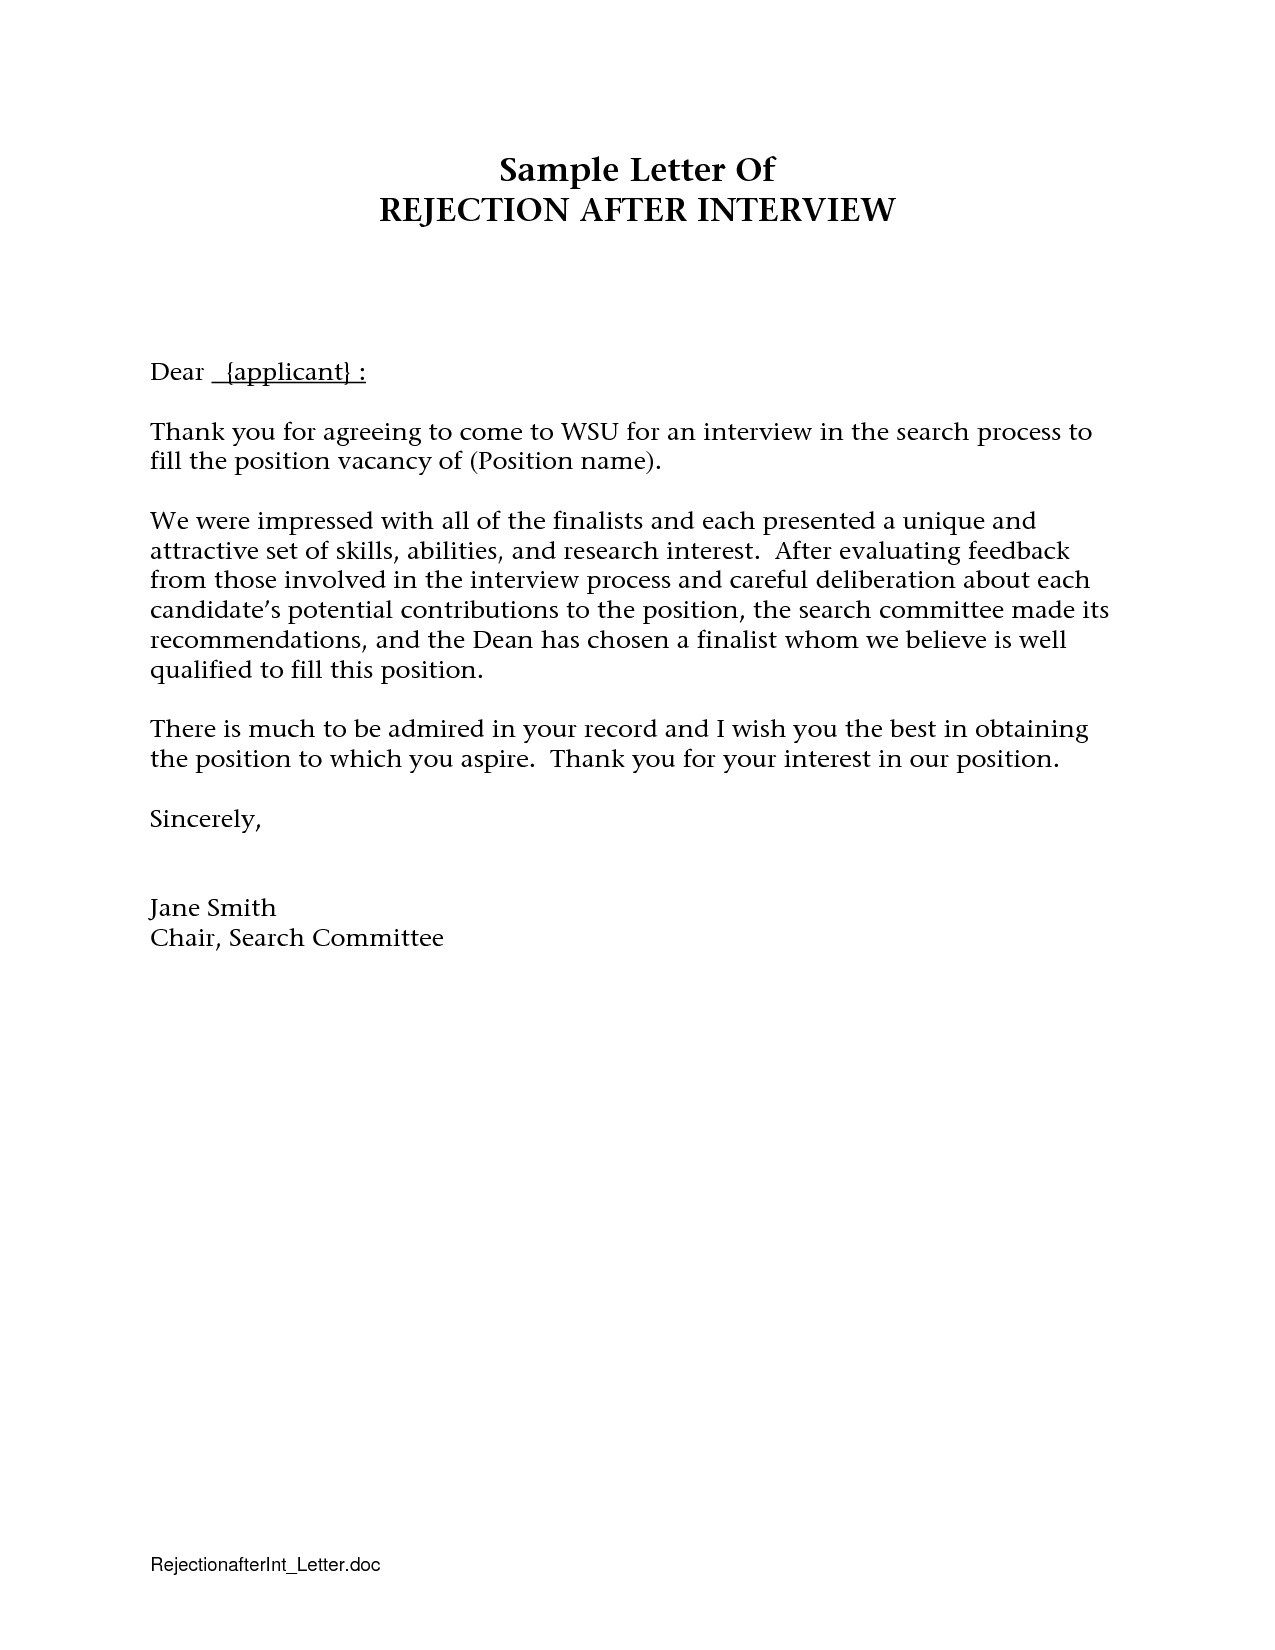 Rejection Letter Template after Interview - Follow Up Letters after Interview Ideas Of Interview Thank You